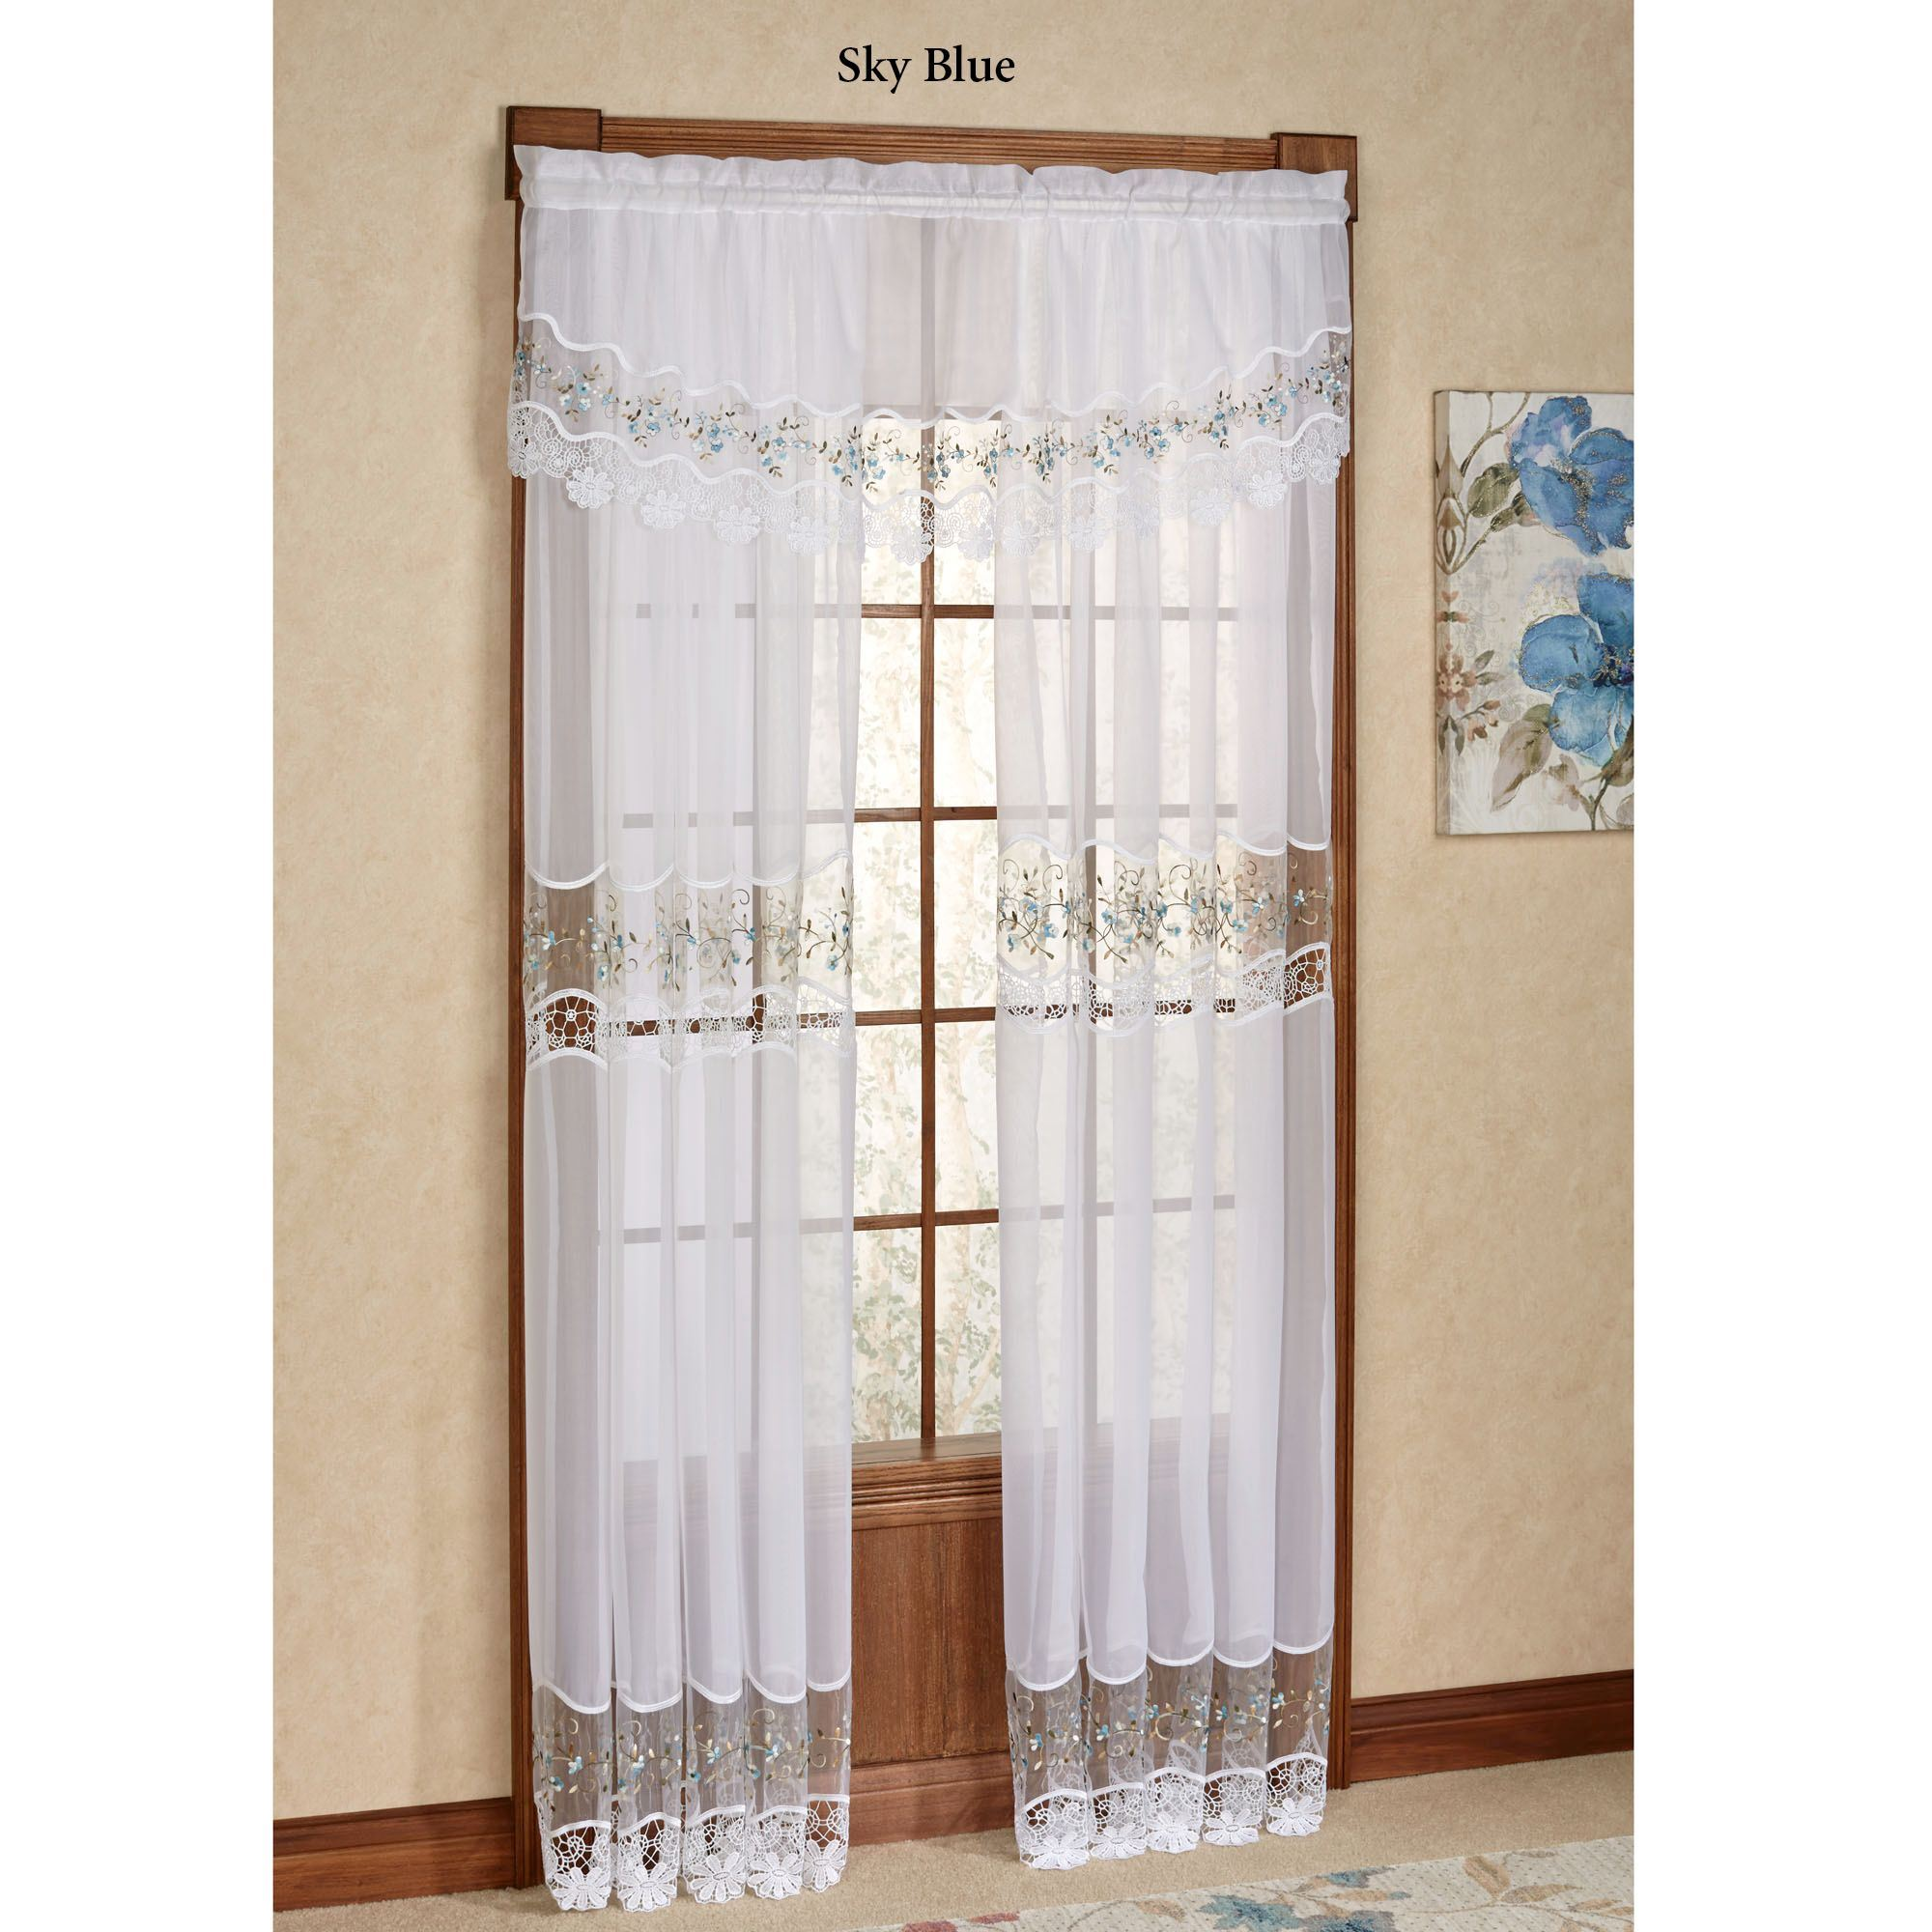 Vintage Sheer Curtains